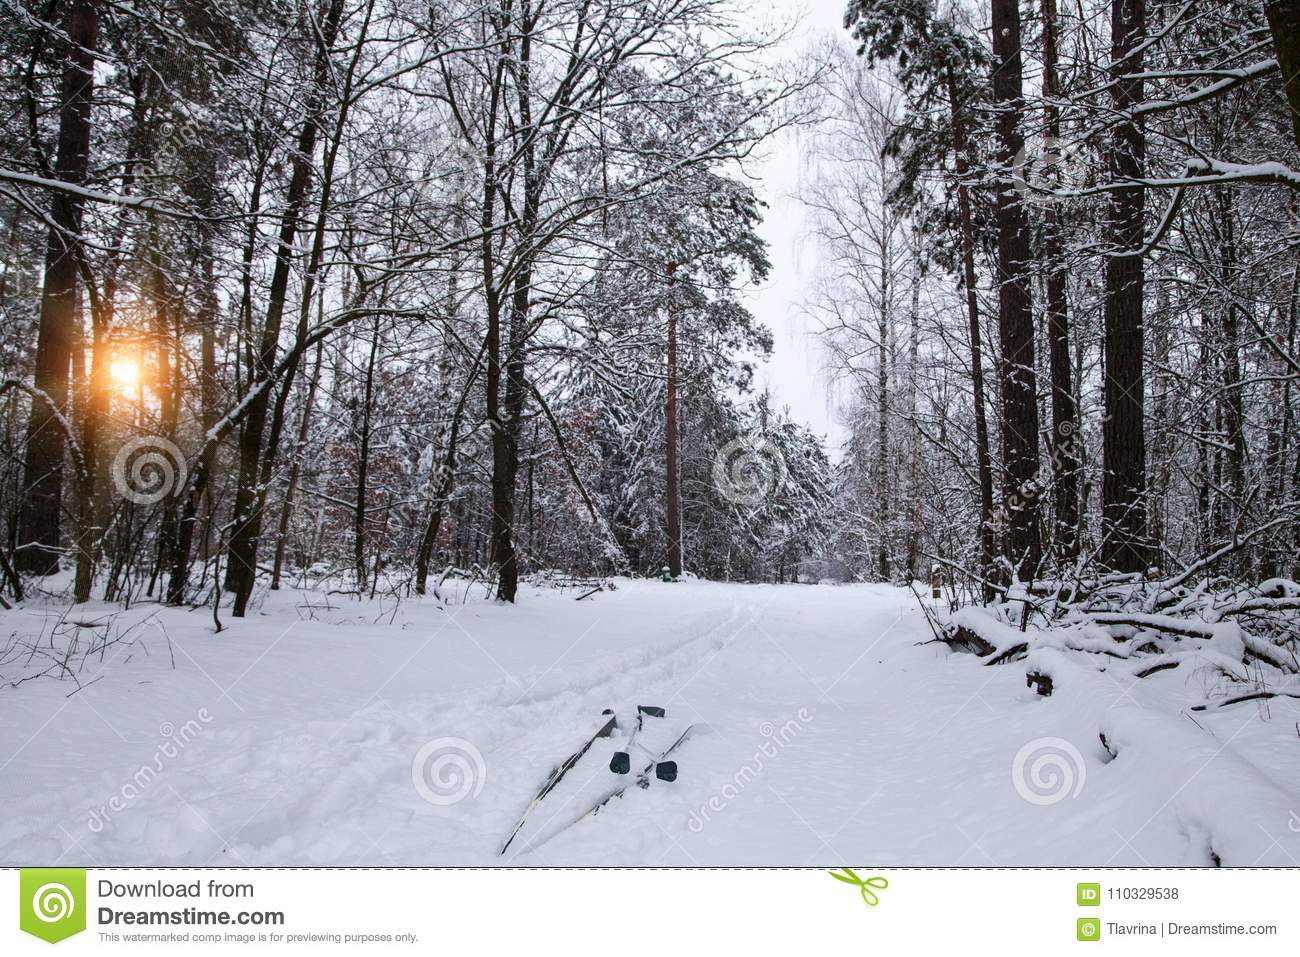 Nordic skiing concept background. man is skiing in winter forest at sunset